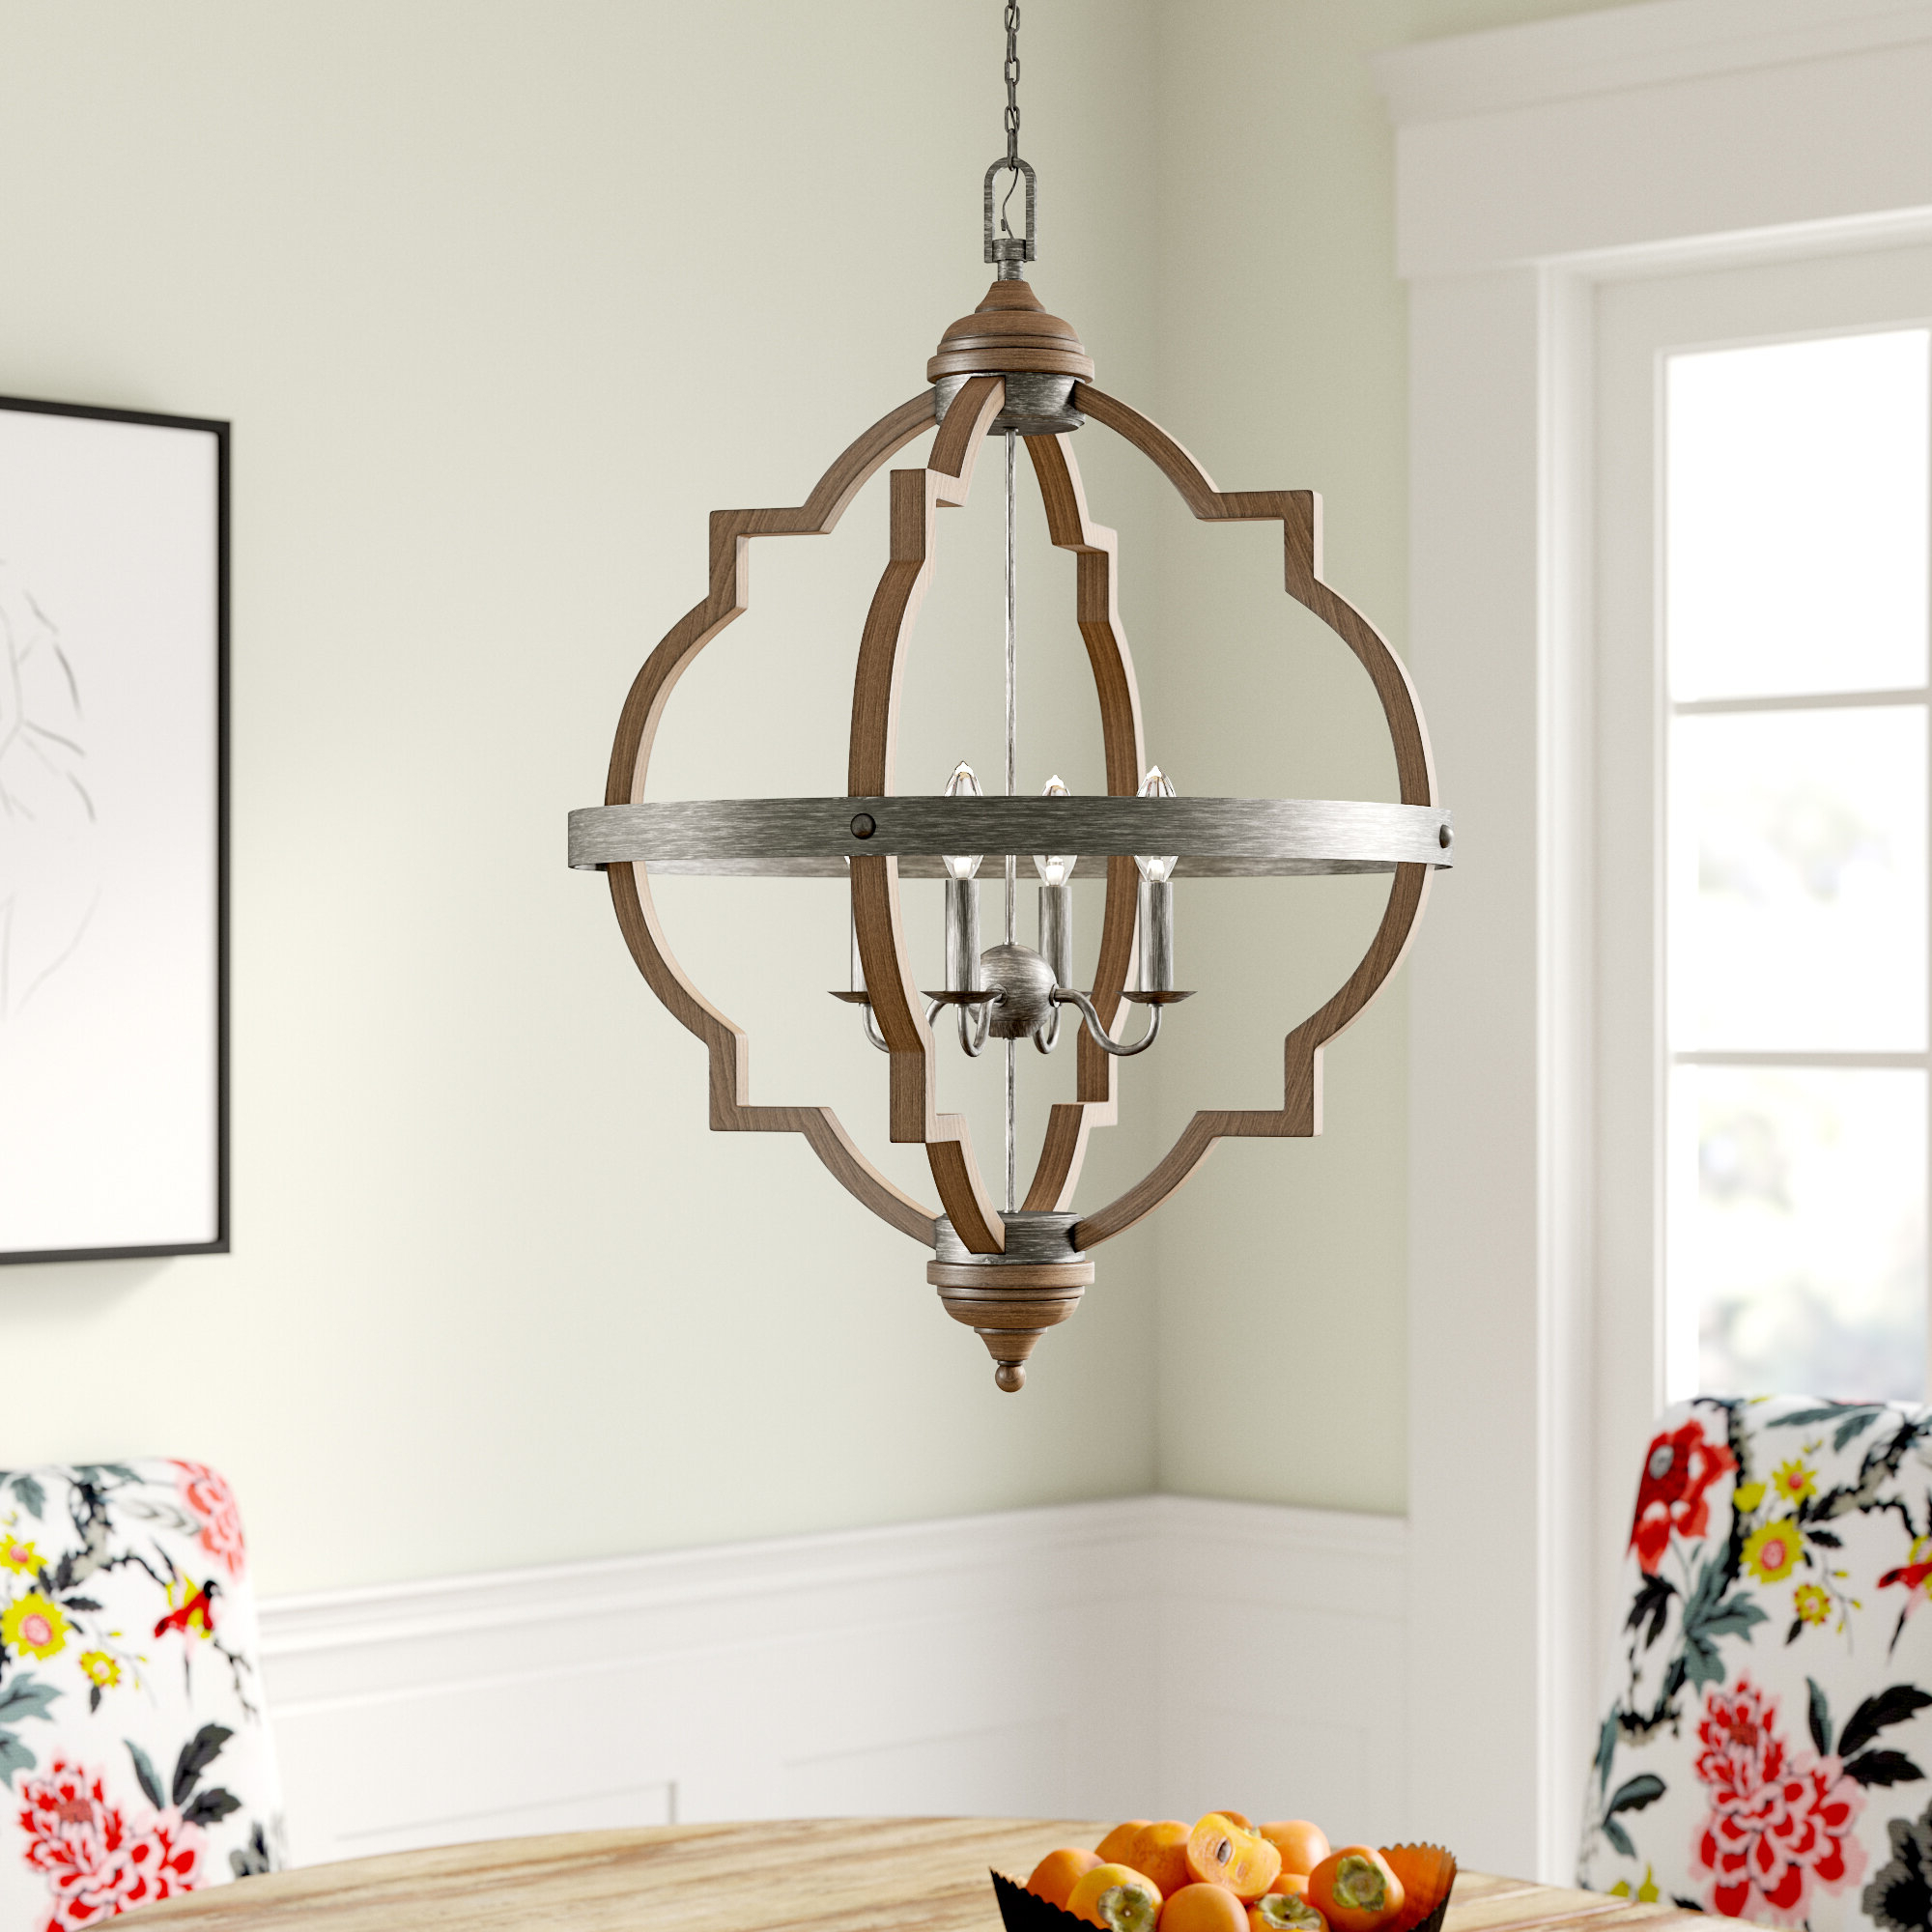 2019 Annuziata 3-Light Unique/statement Chandeliers throughout Bennington 4-Light Candle Style Chandelier